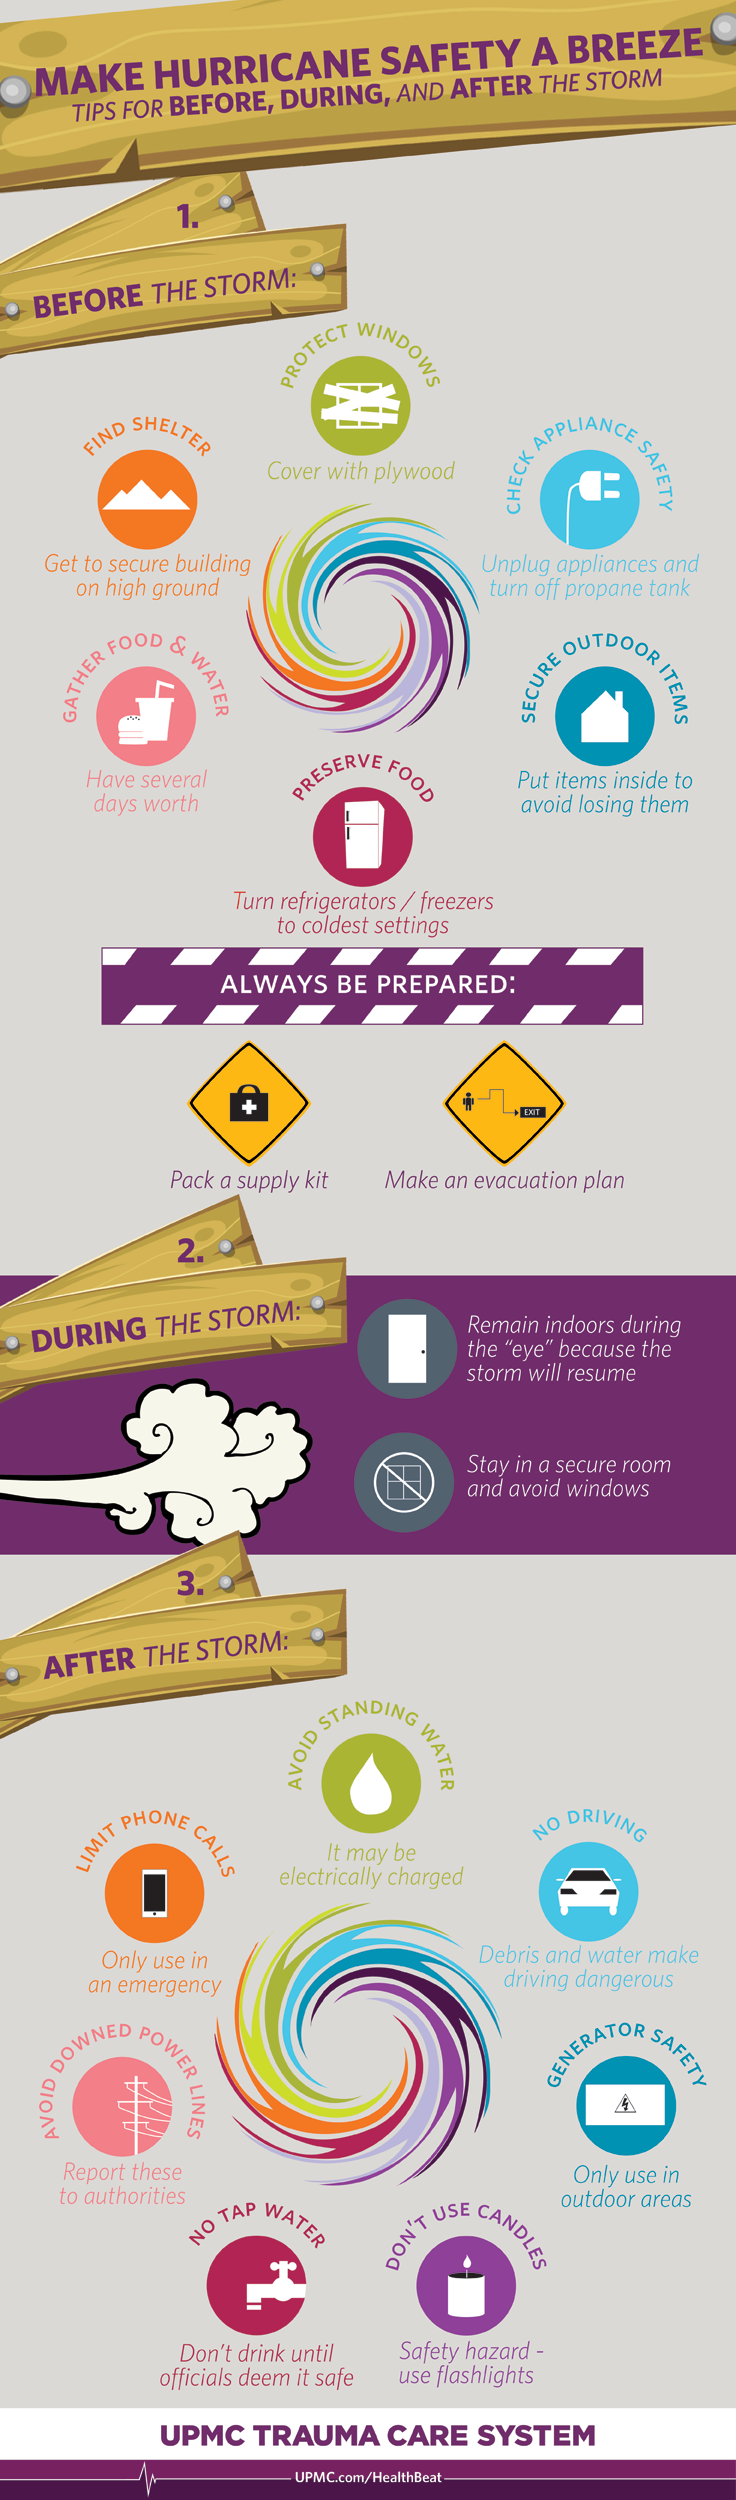 Find these hurricane safety tips